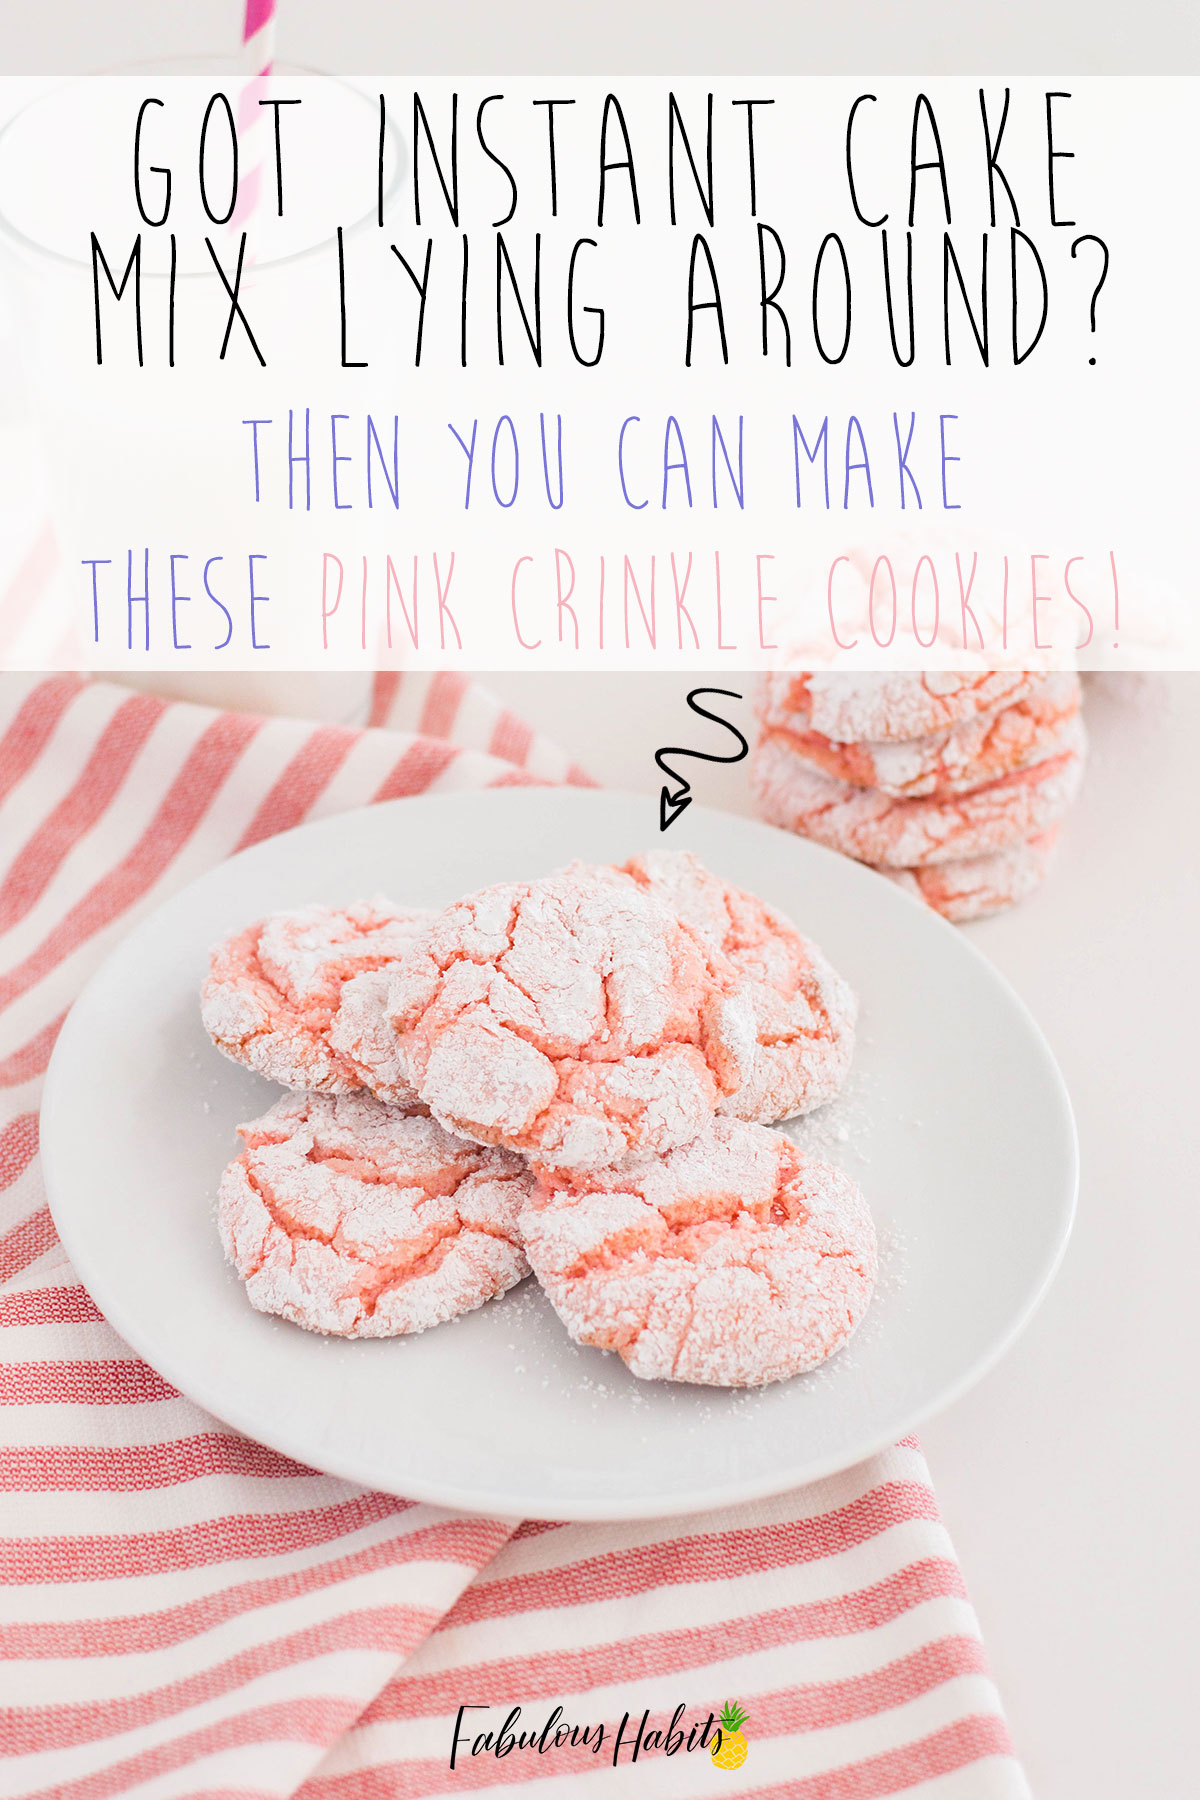 If you have instant cake mix and don't necessarily want to make another cake... here's a great recipe: Pink Crinkle Cookies. Who knew you could make cookies out of cake mix?! Awesome! #crinklecookies